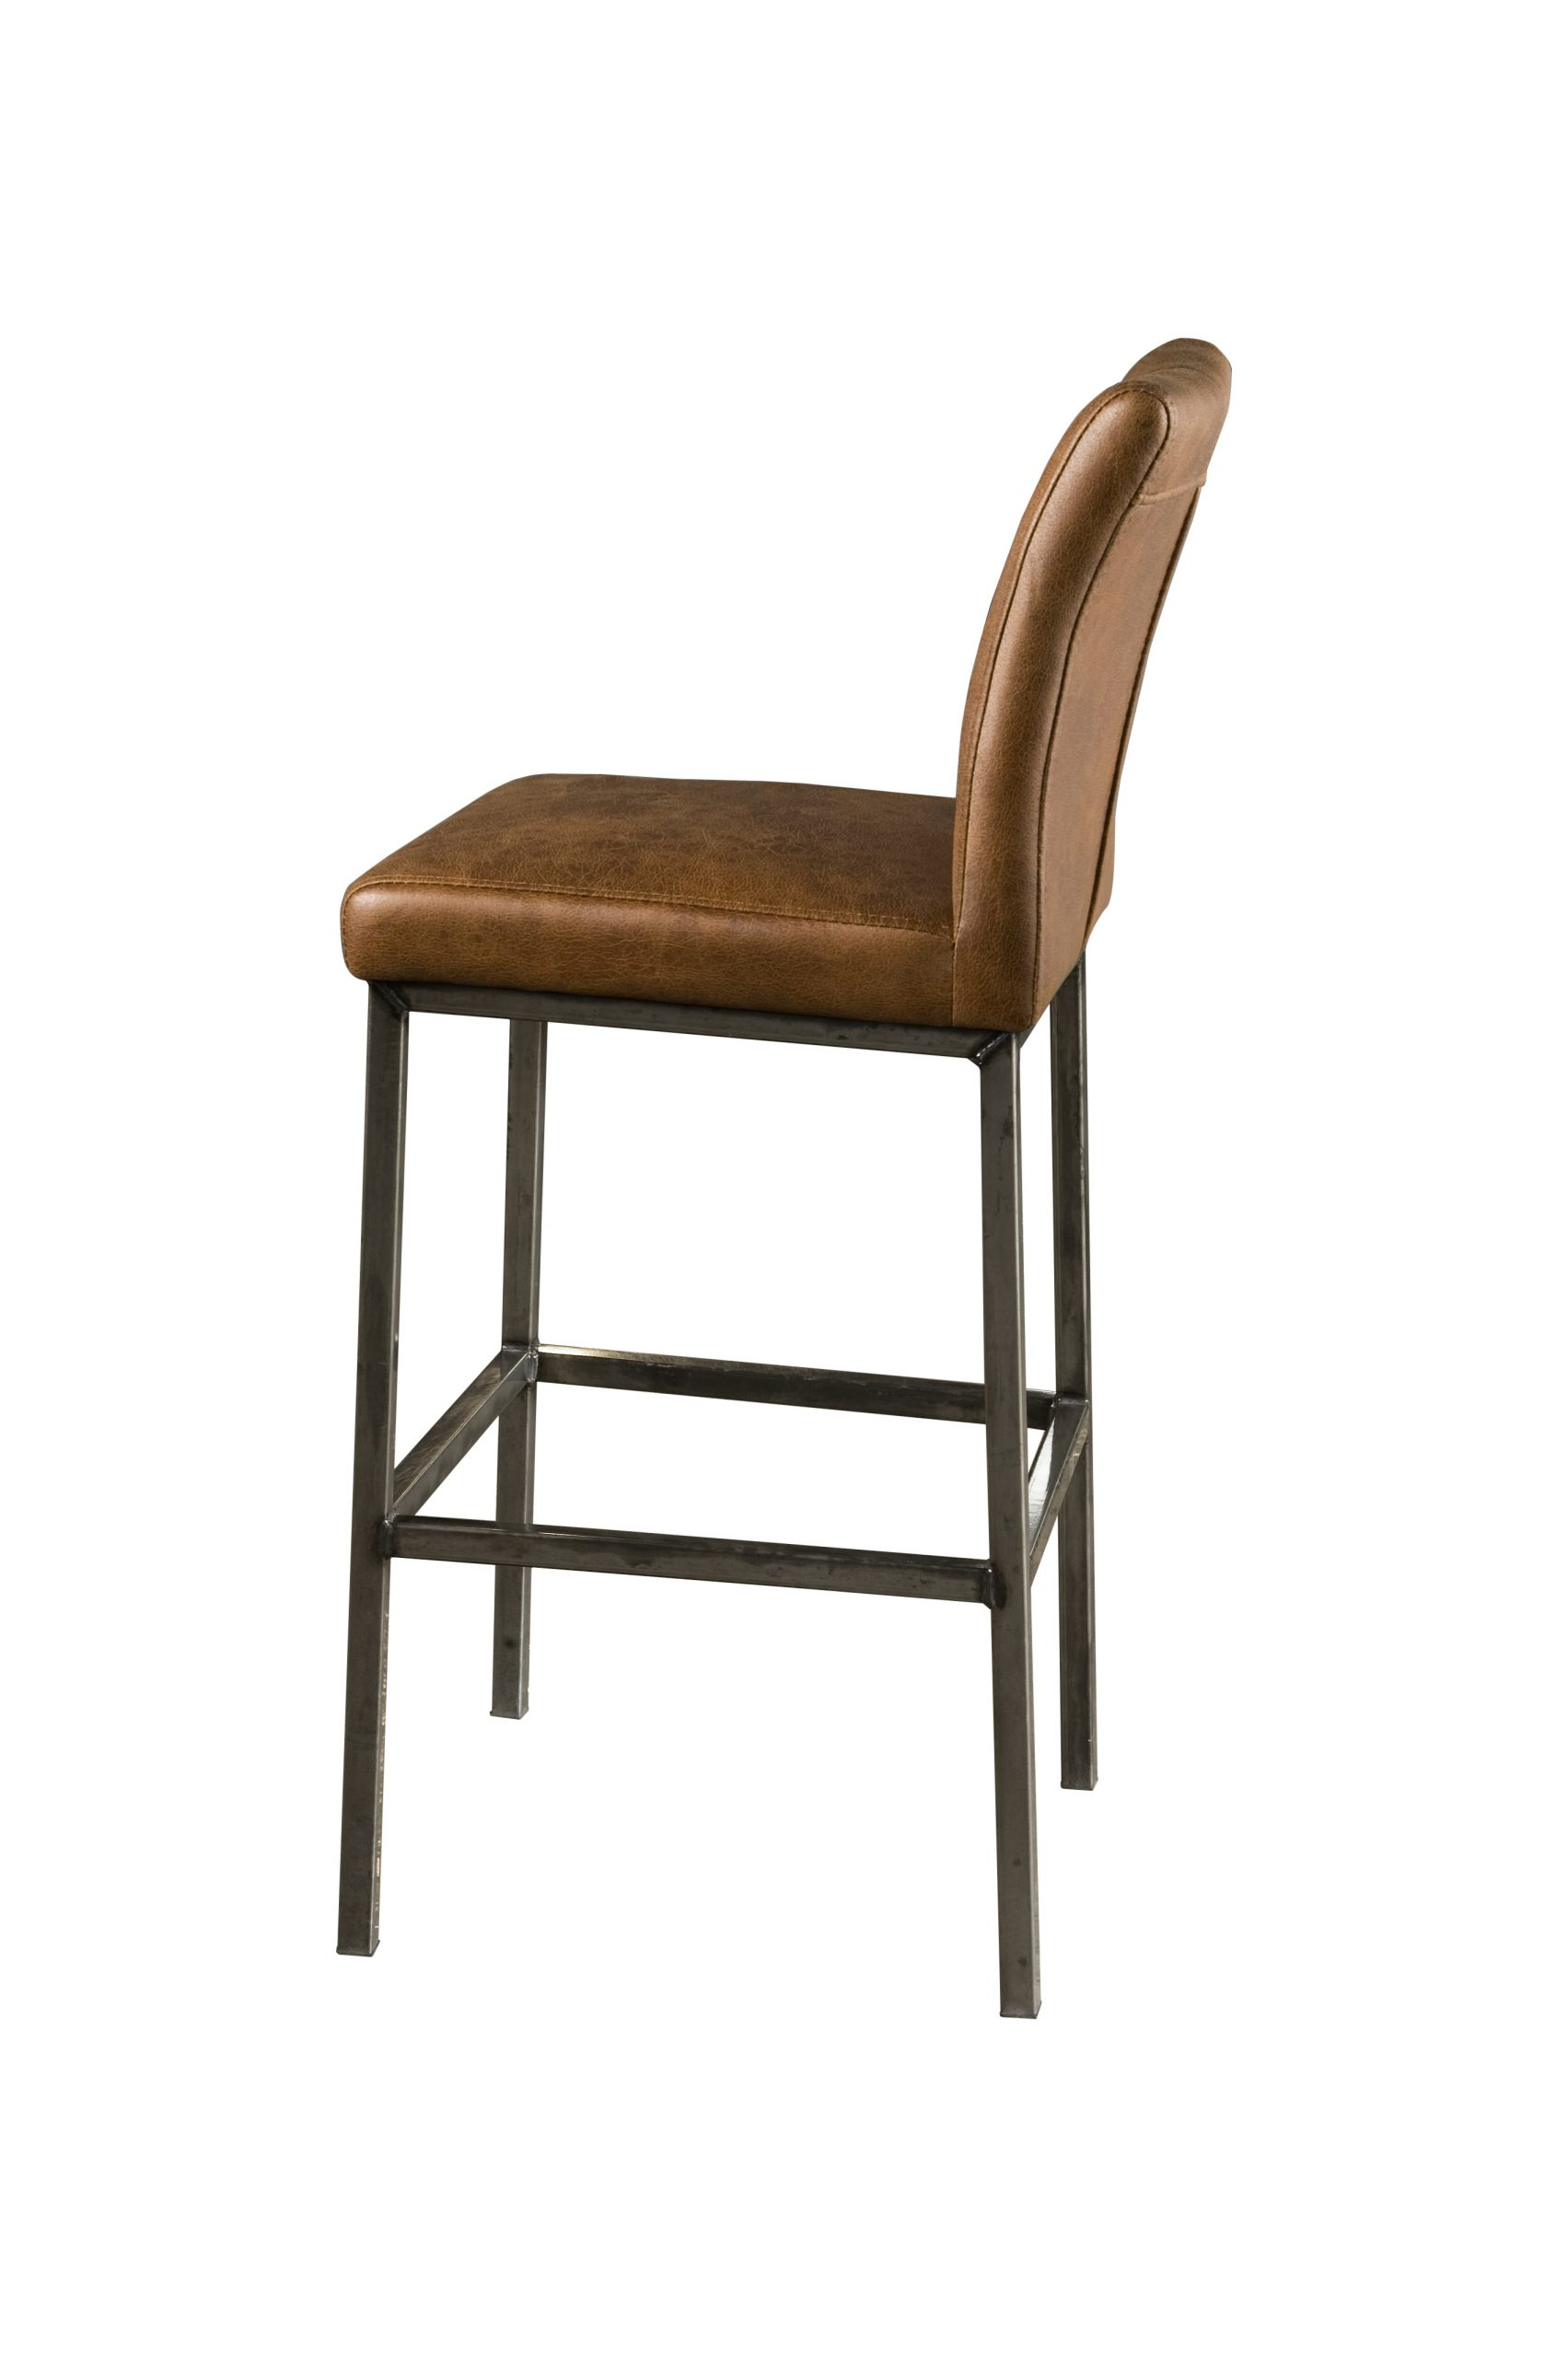 NC 0052 - Sevilla barstool - fabric dark brown (A)